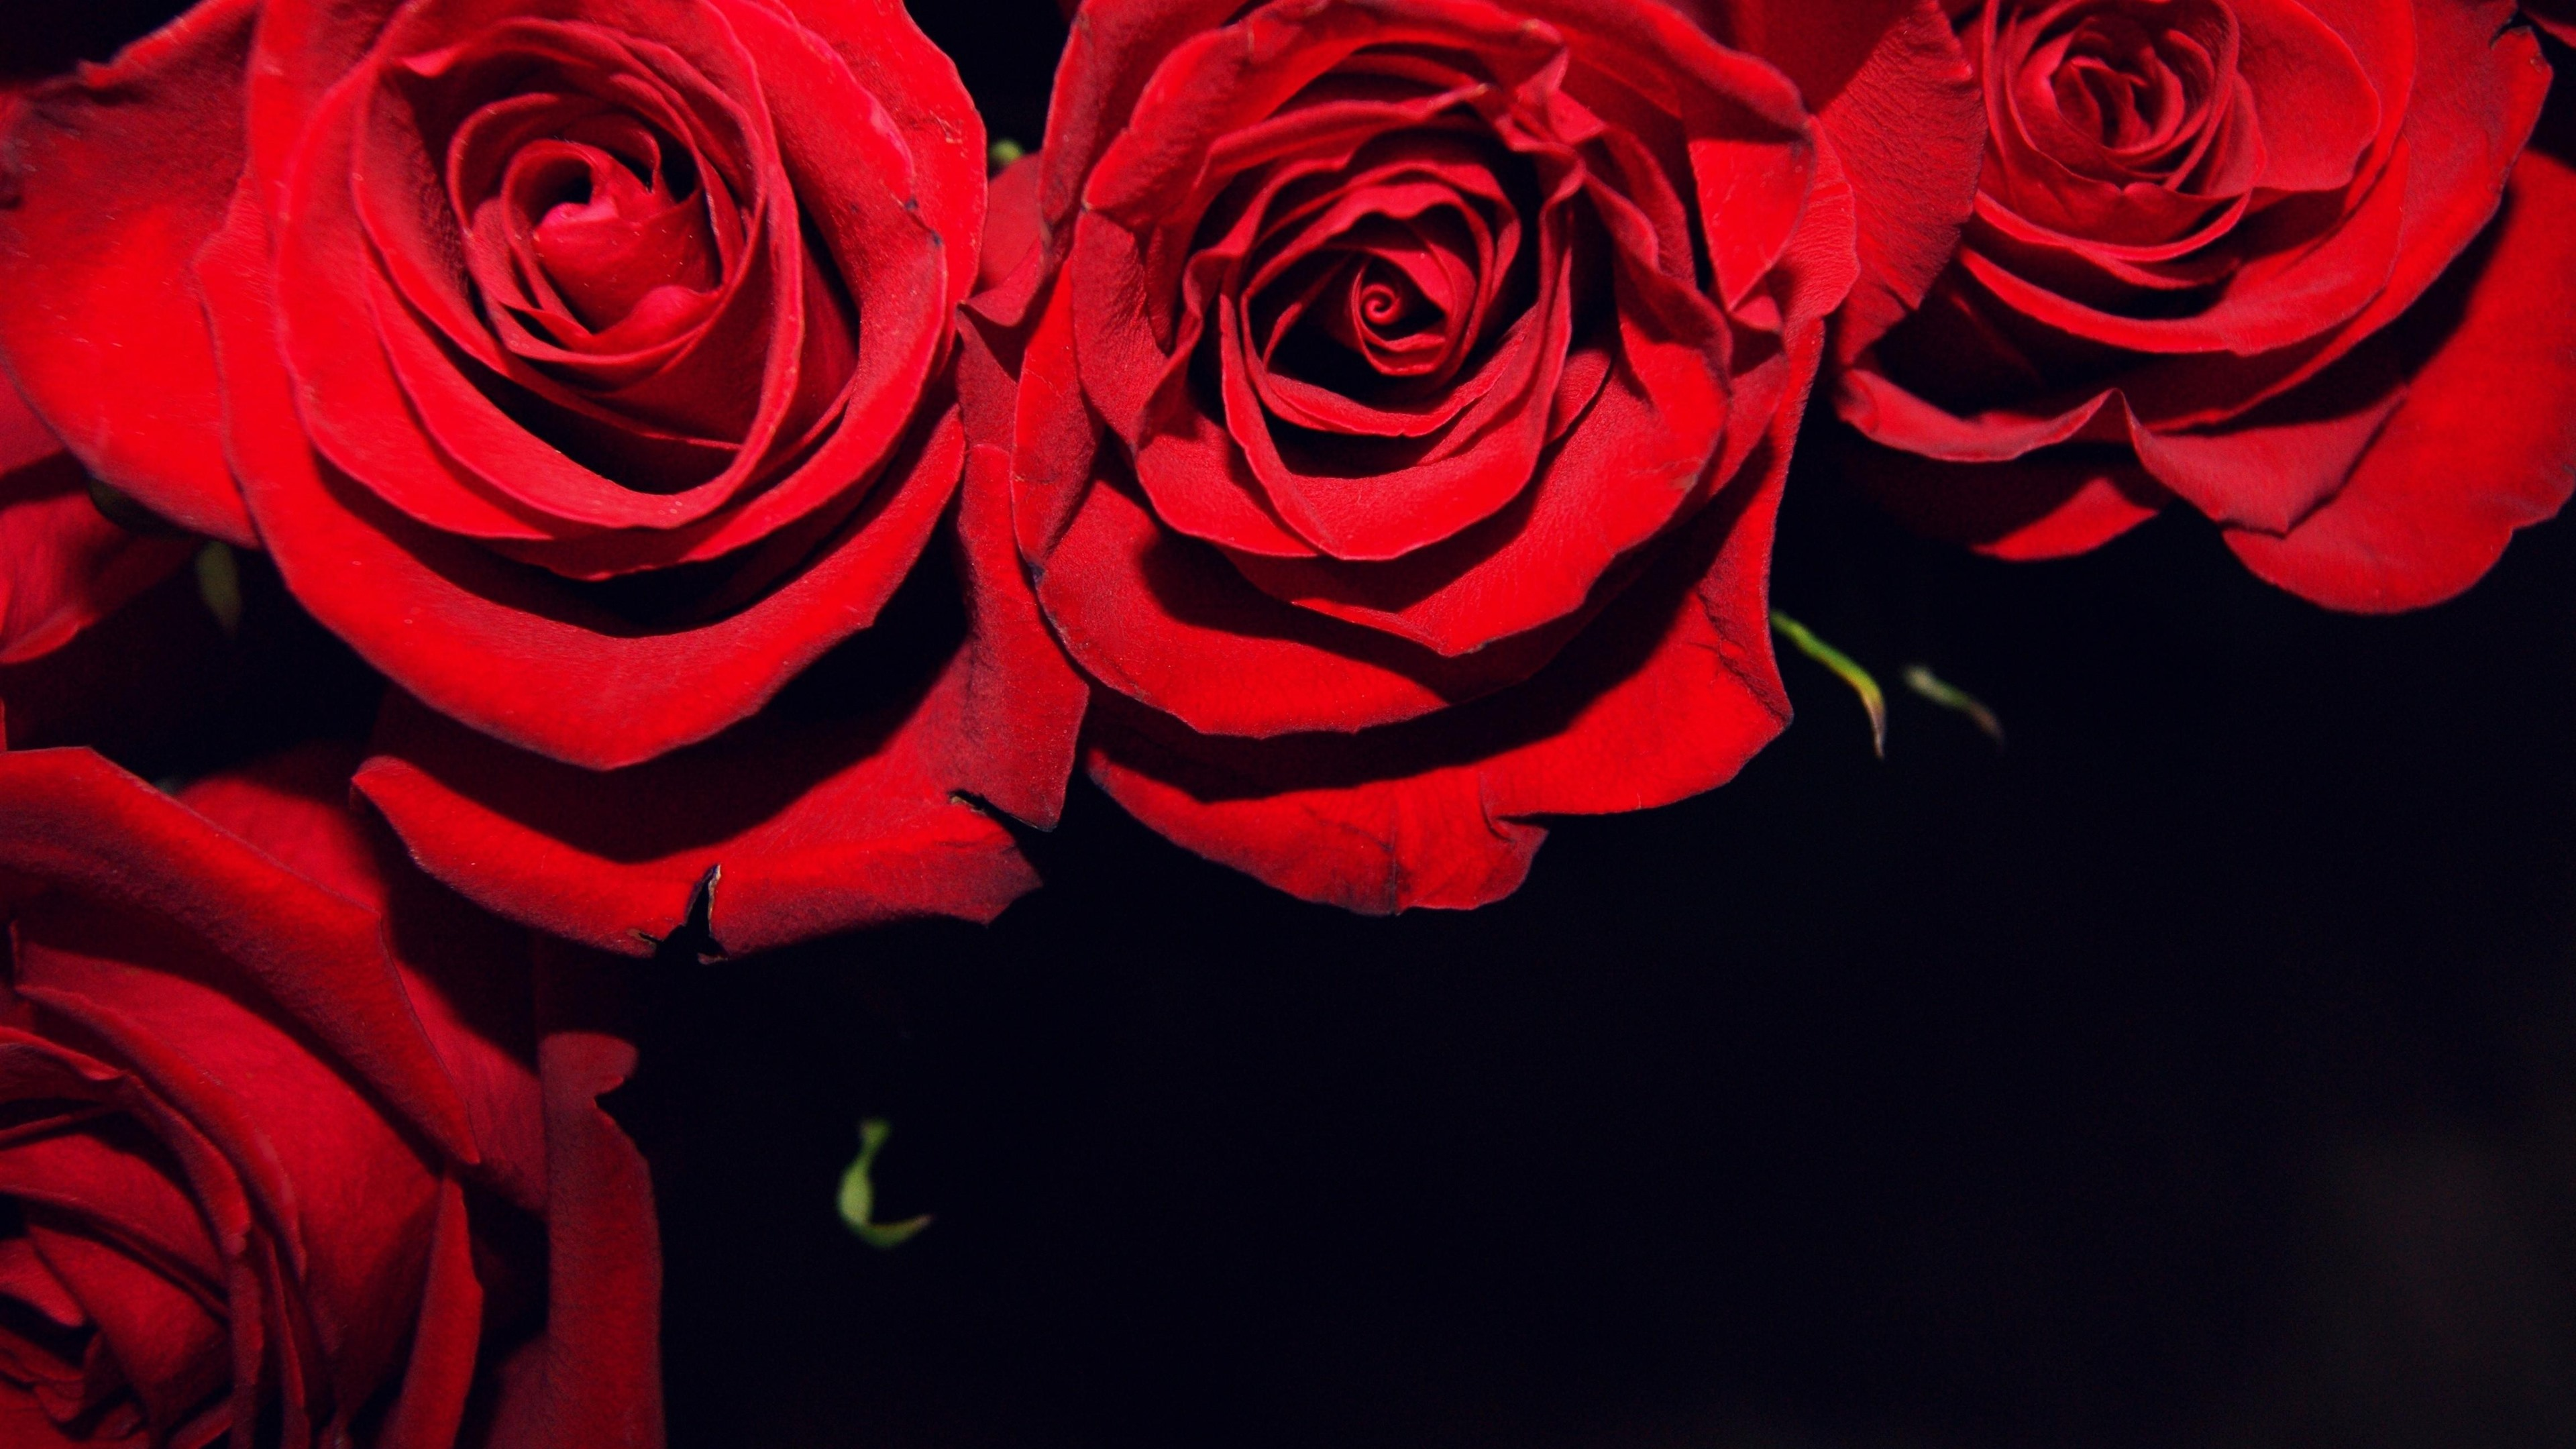 Wallpaper Red Roses Black Background 3840x2160 Uhd 4k Picture Image